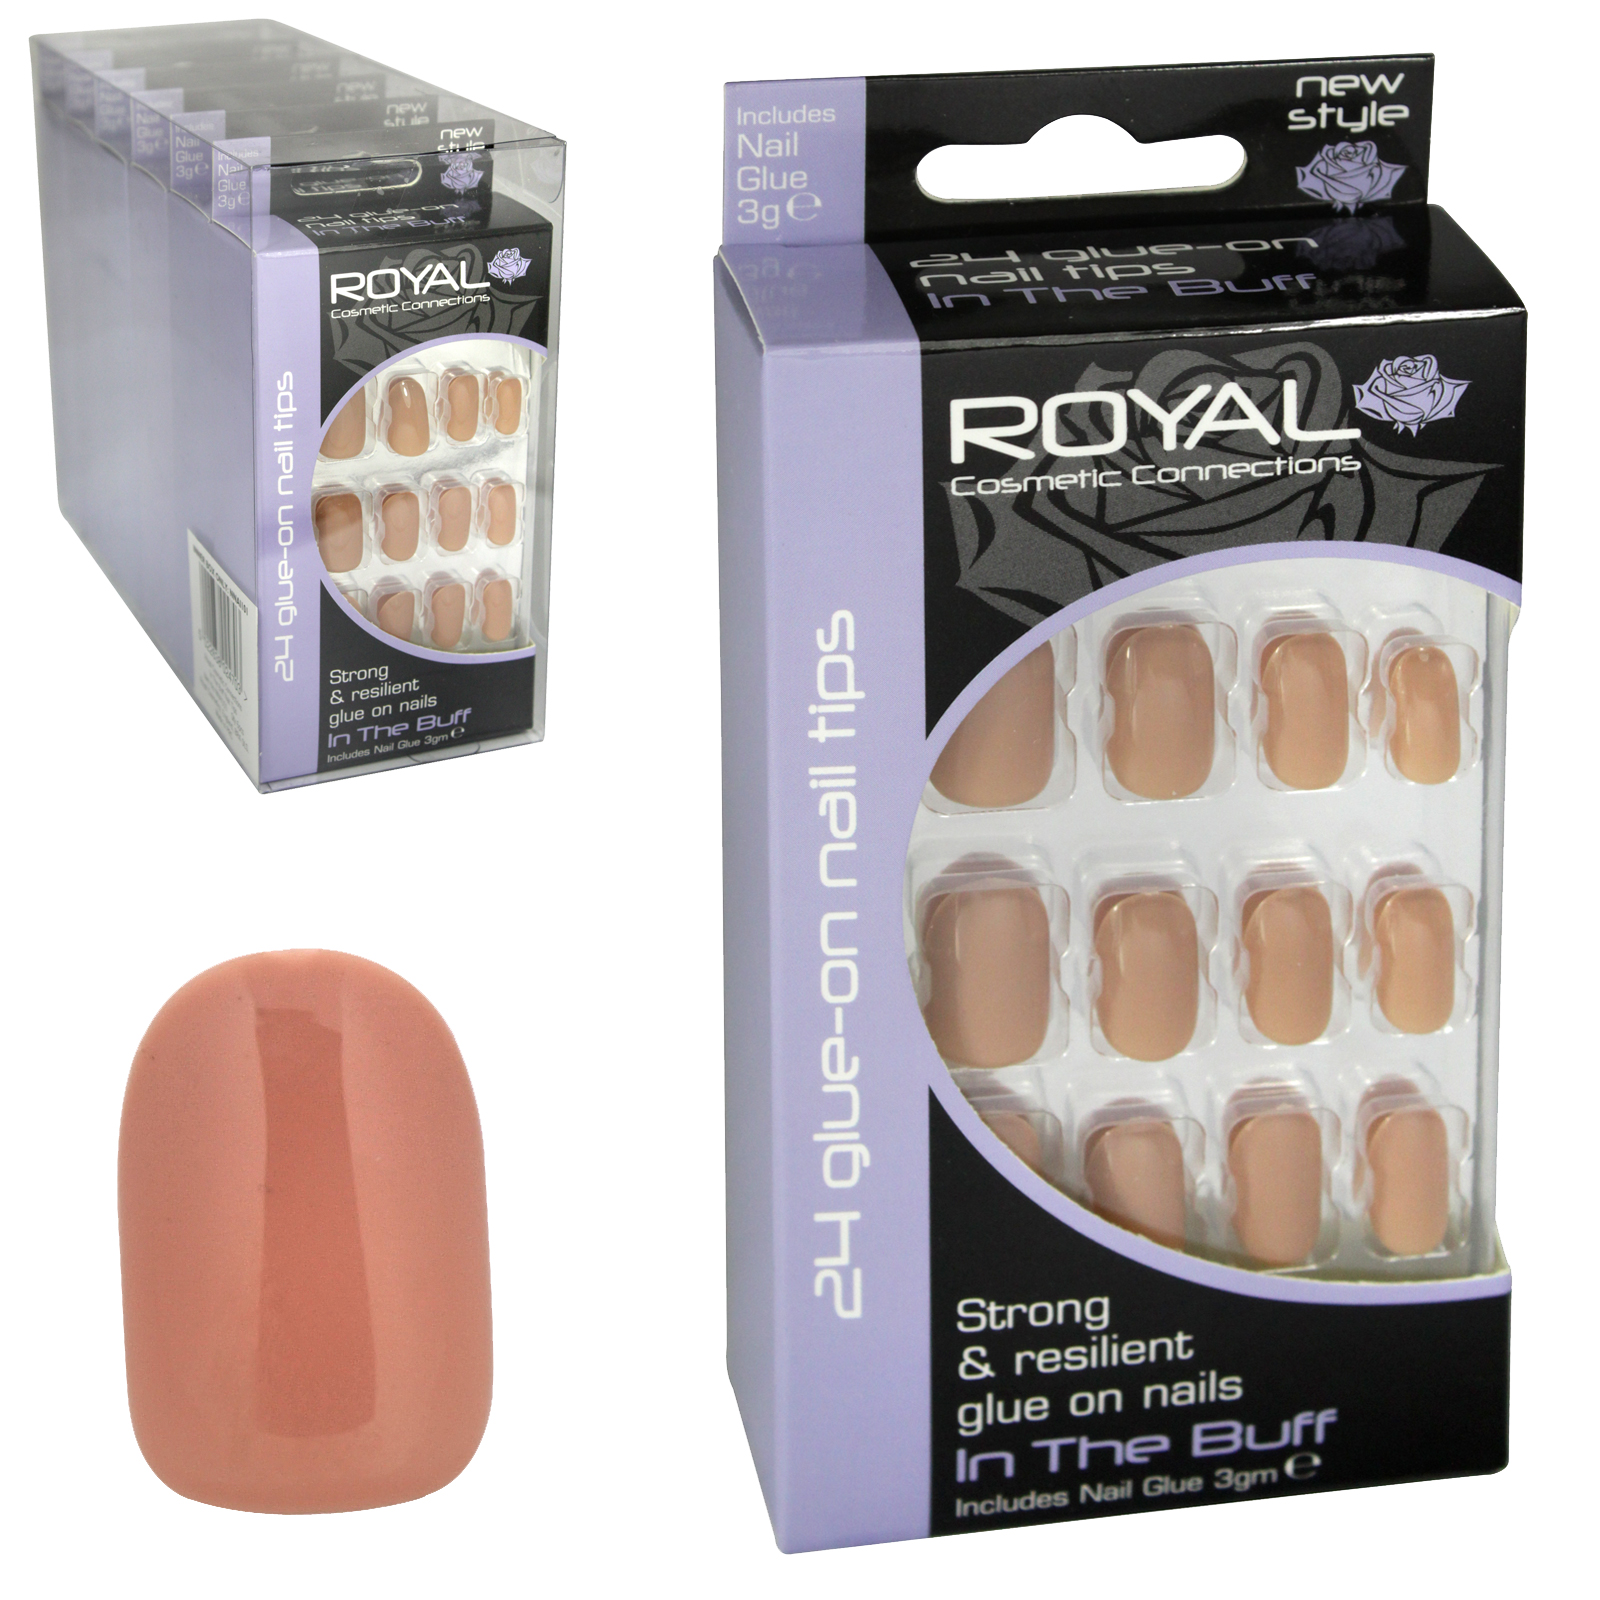 ROYAL 24 NAIL TIPS+GLUE IN THE BUFF X6